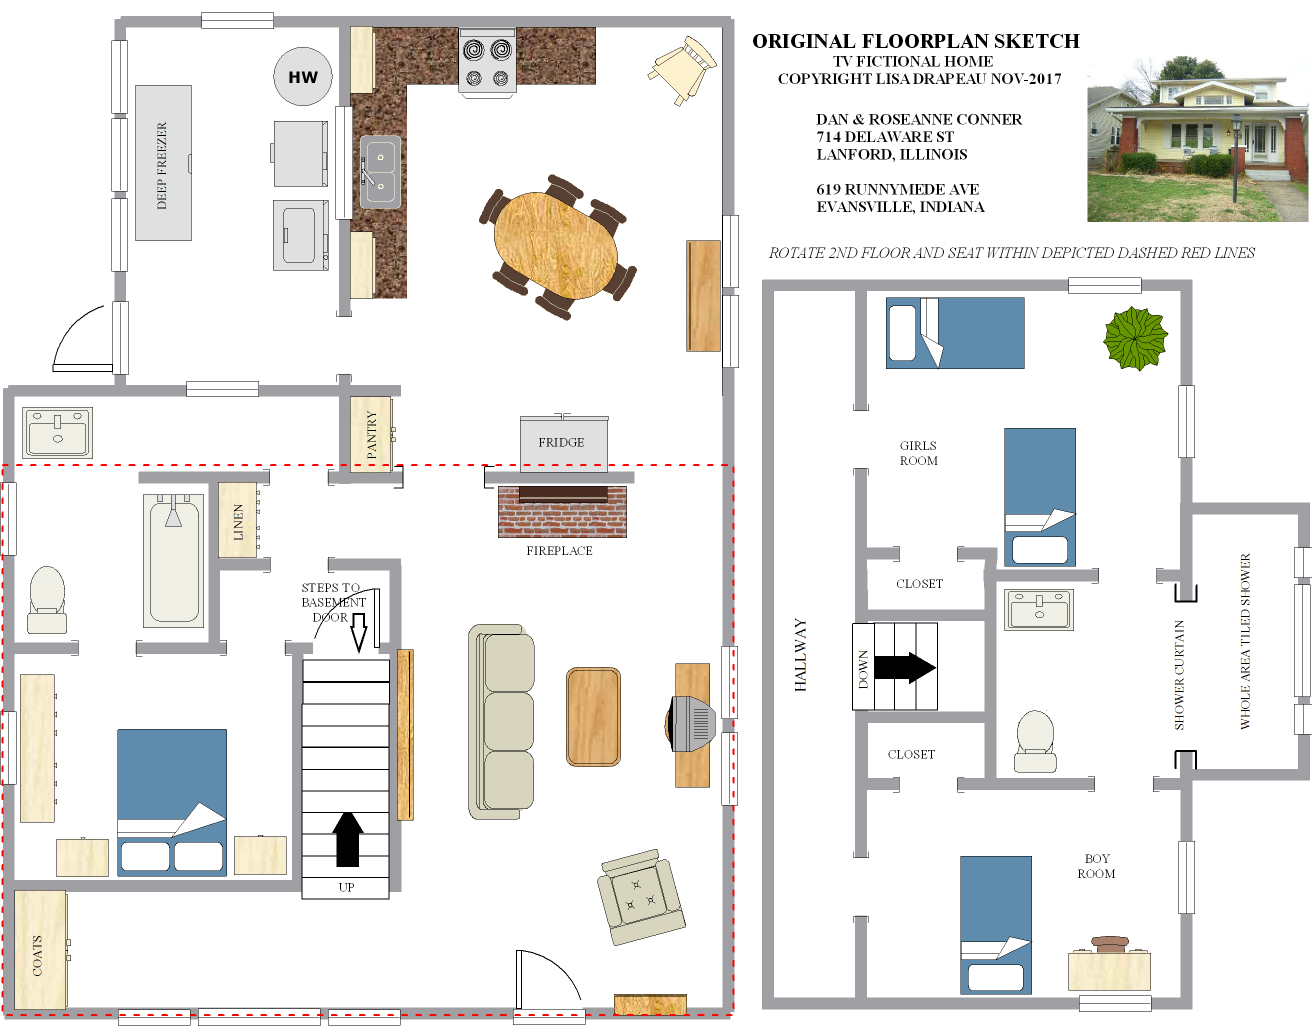 Dan & Roseanne Connor (Conner) Home Floor Plan, 714